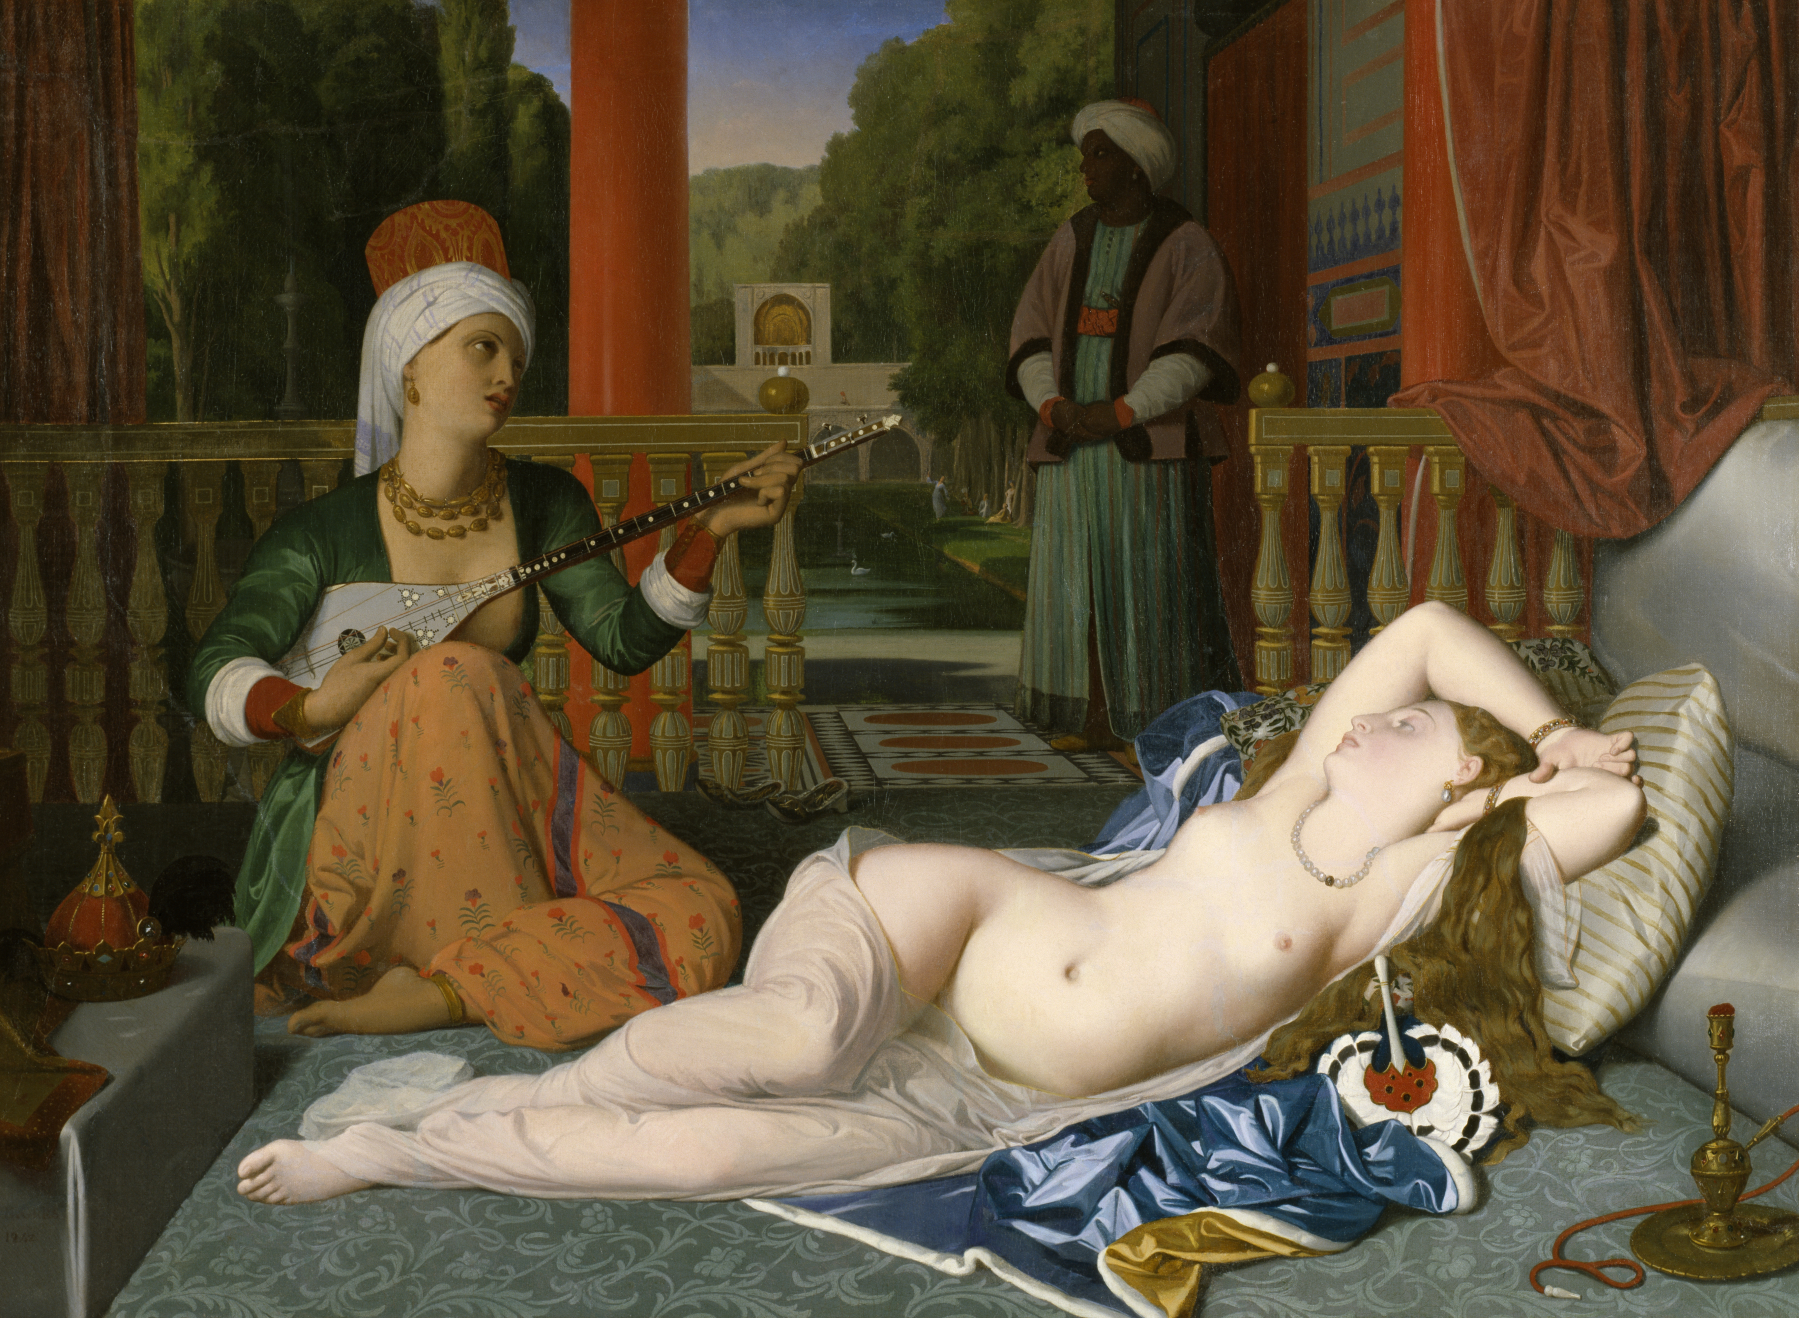 Jean-Paul_Flandrin_-_Odalisque_with_Slave_-_Walters_37887.jpg